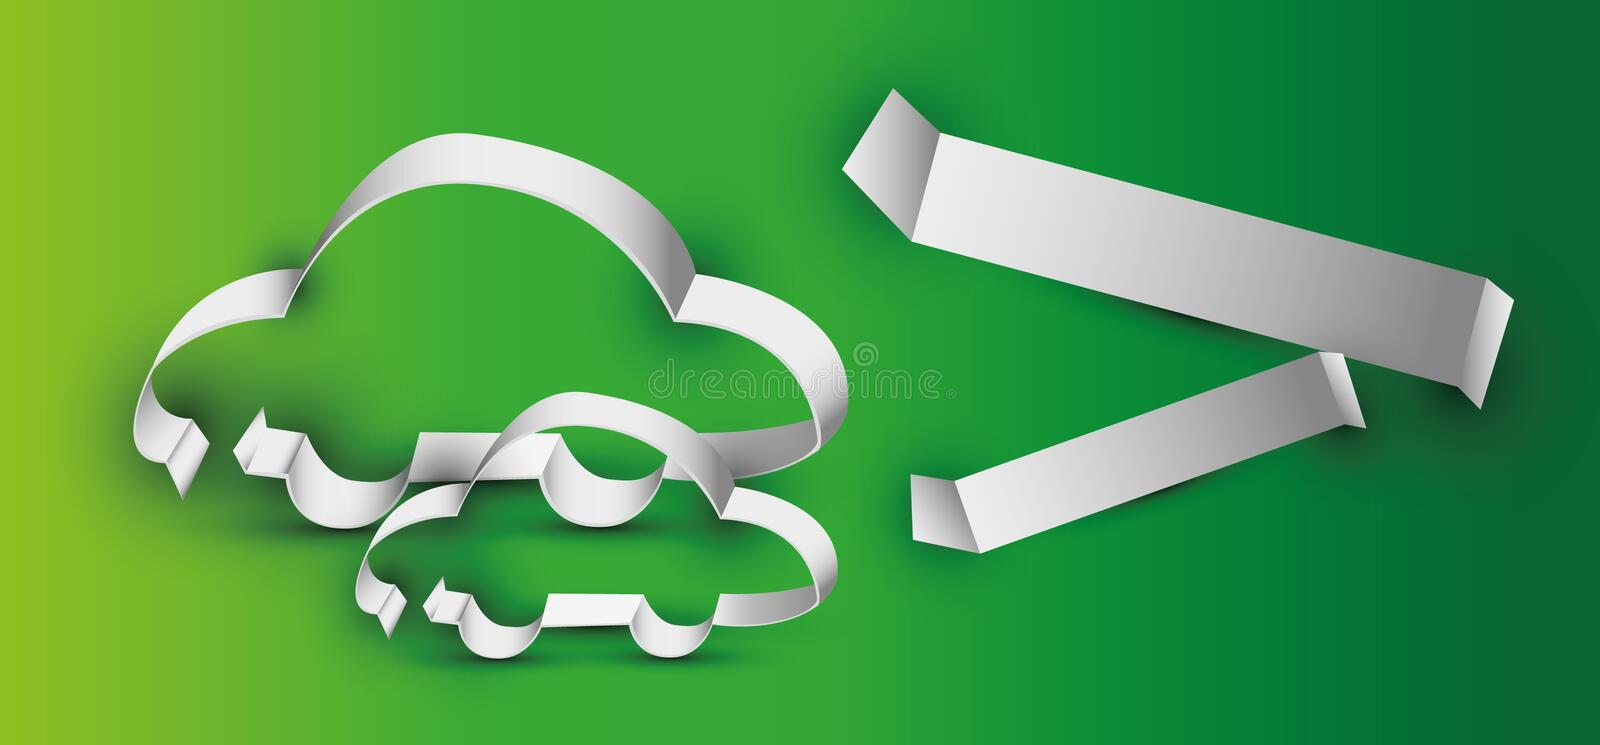 Download Car stock vector. Illustration of puzzle, speed, paper - 31261239